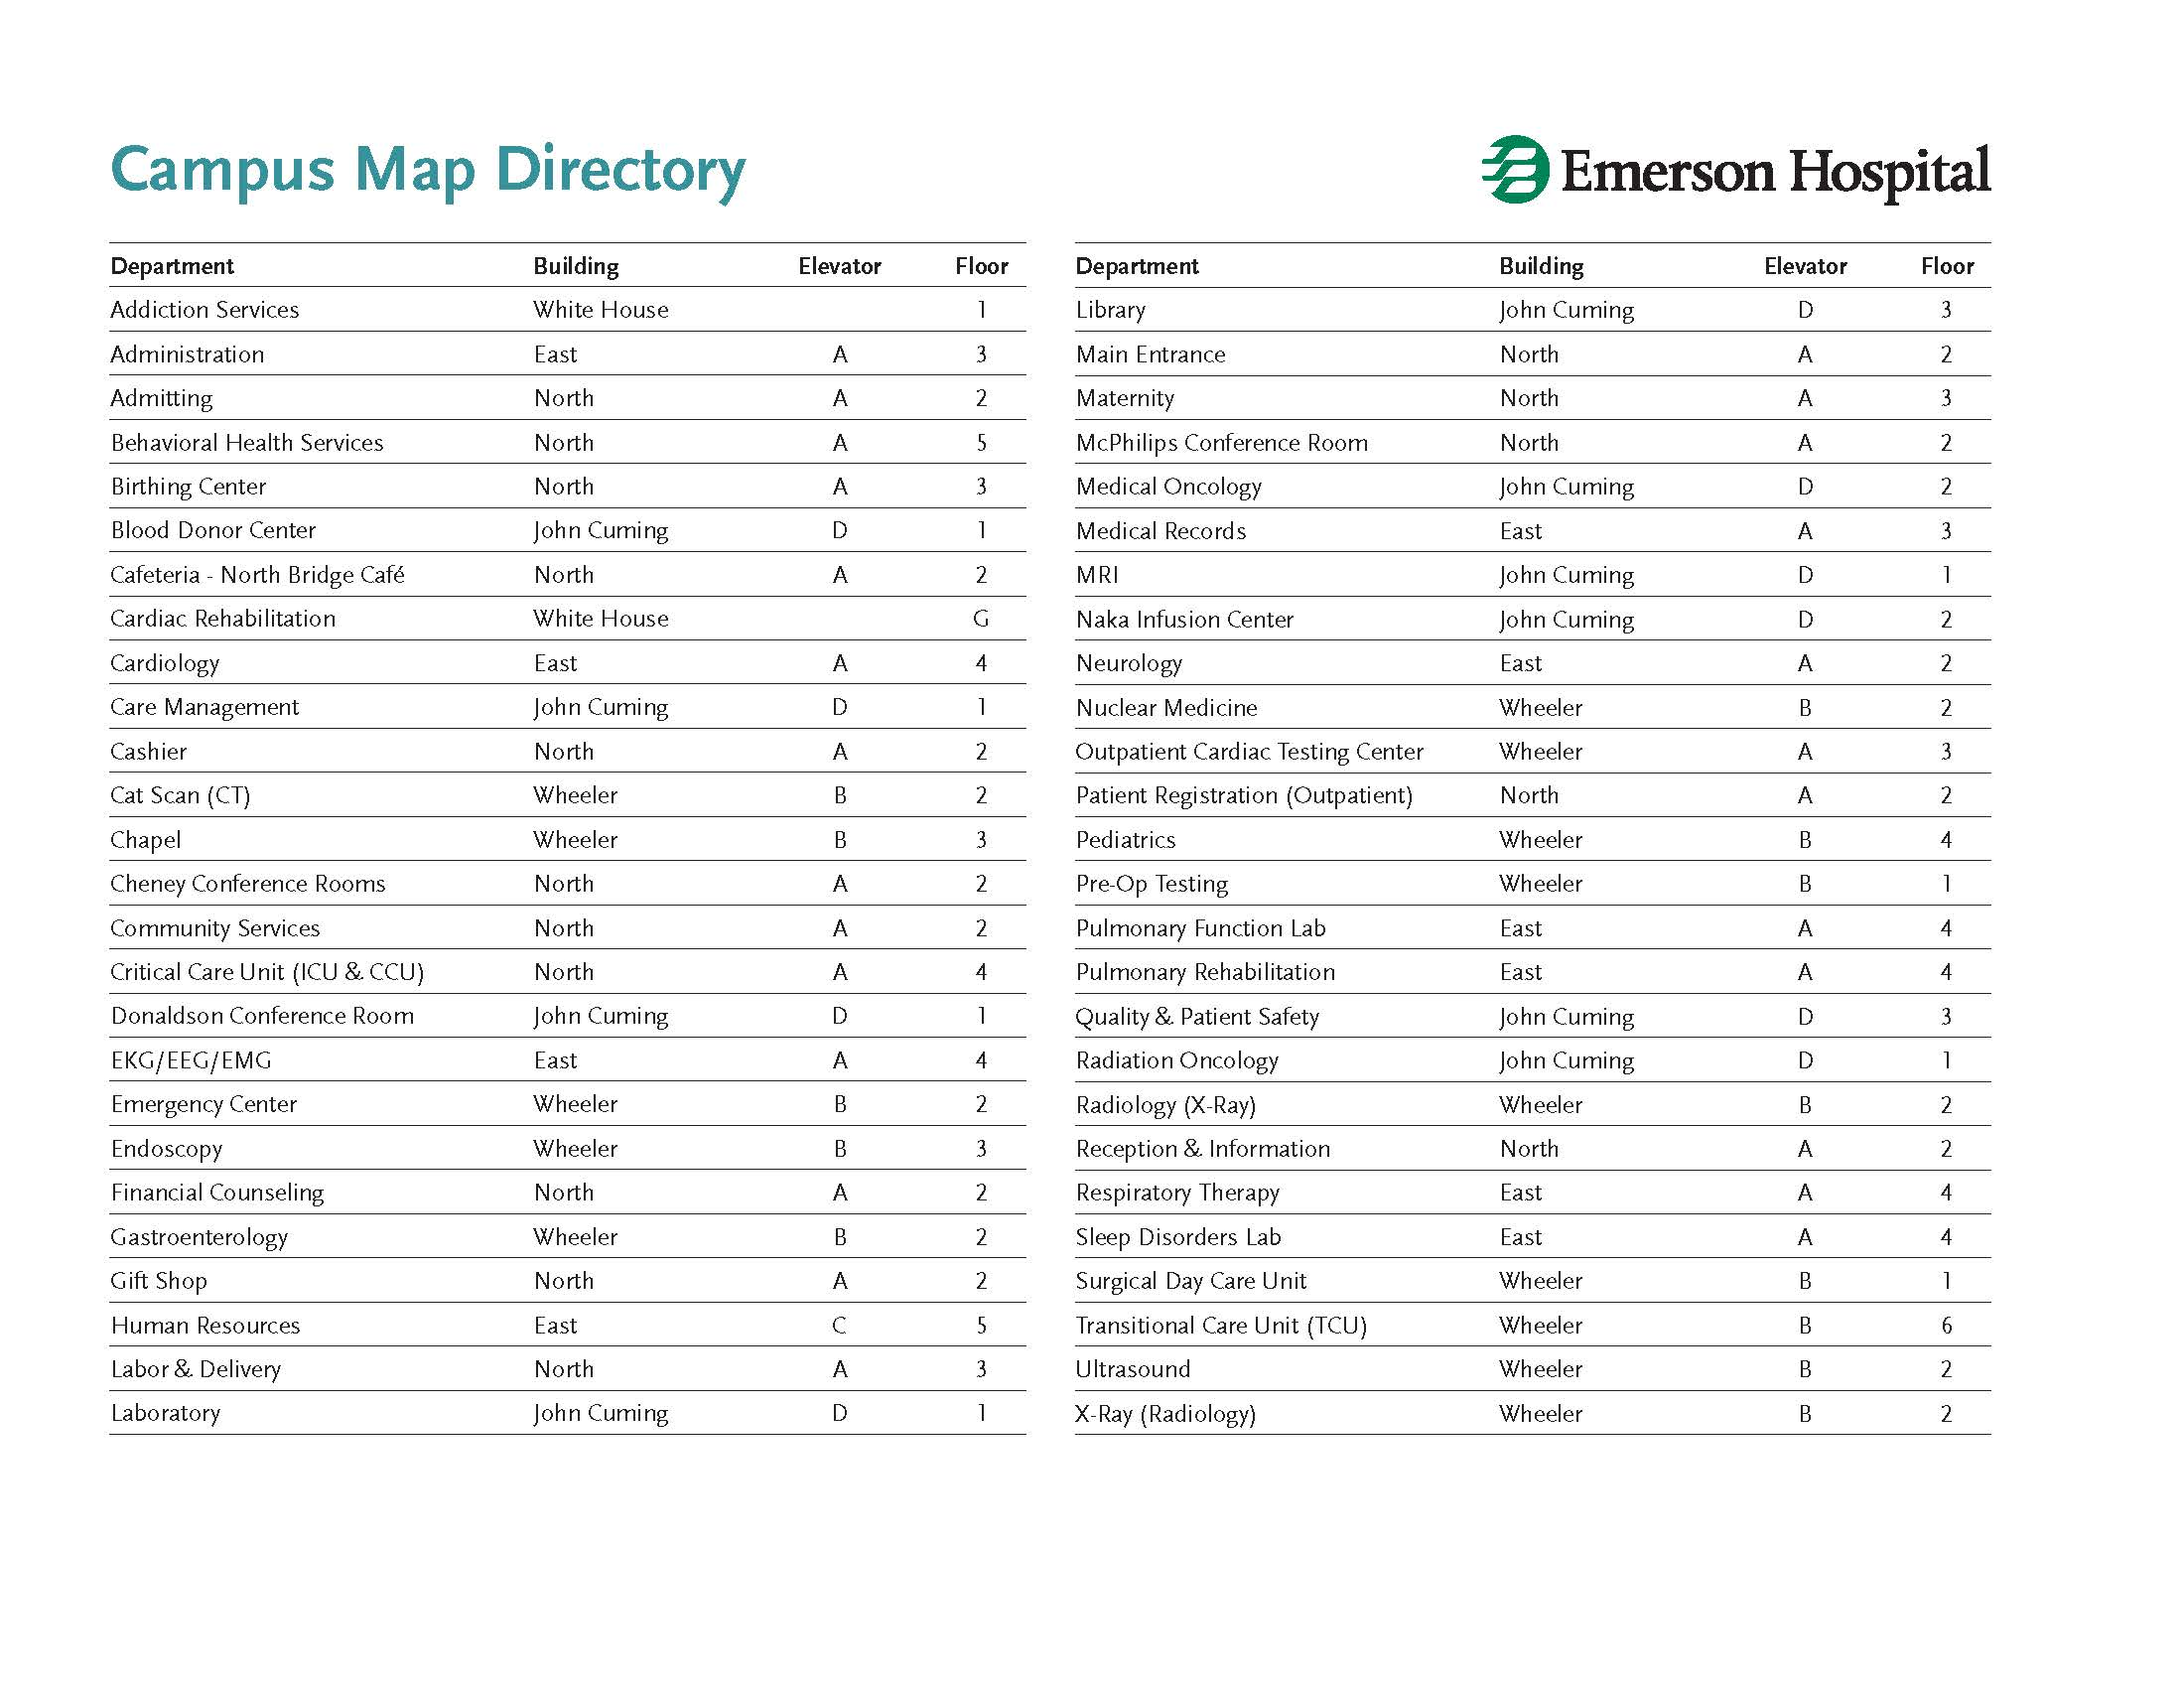 Emerson Hospital Campus Map Directory